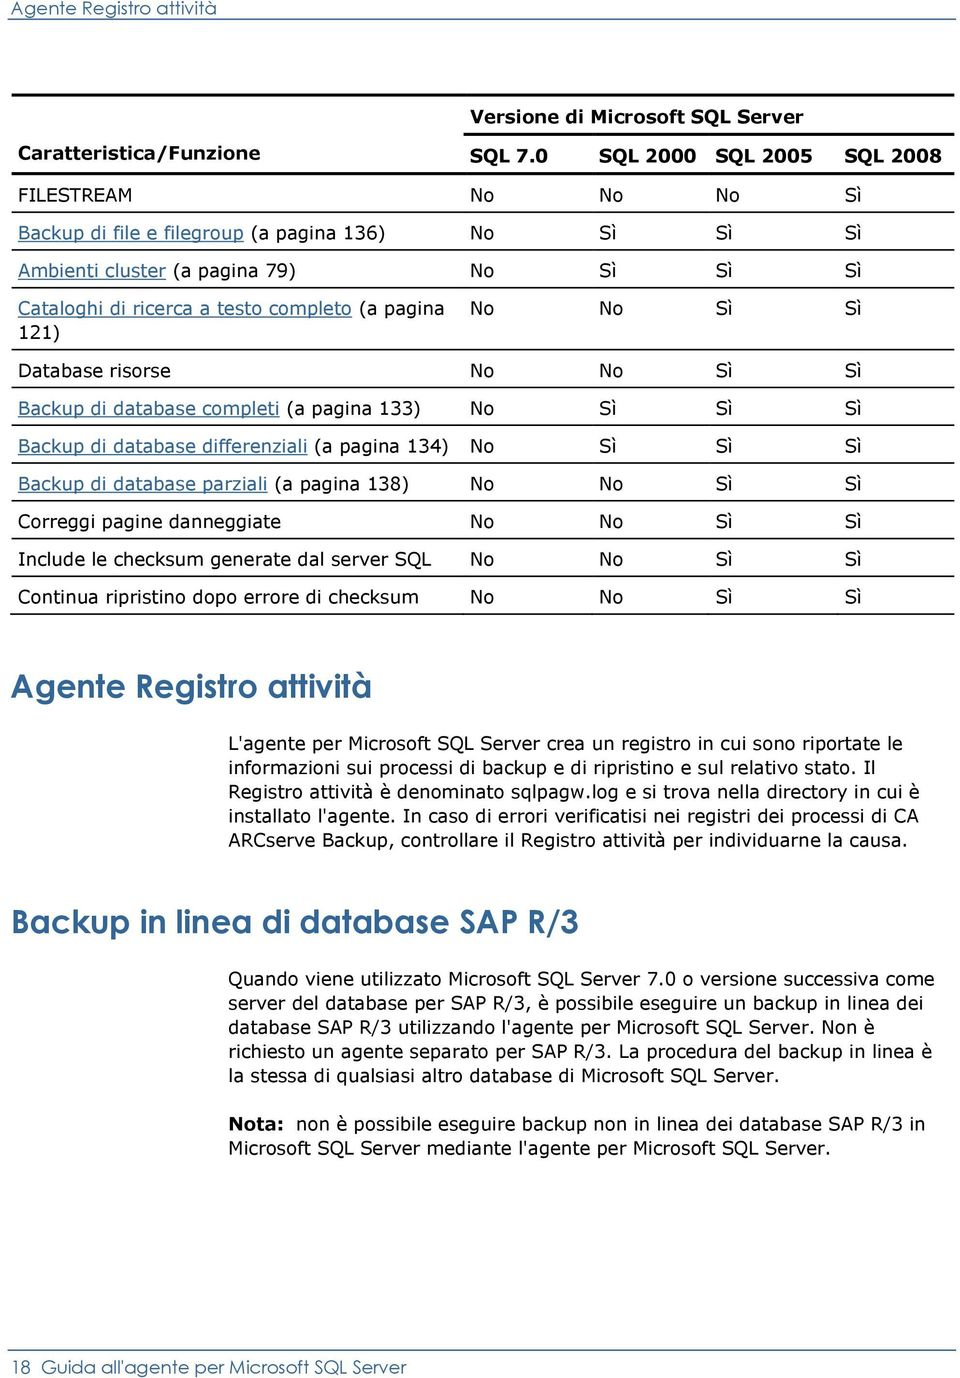 121) No No Sì Sì Database risorse No No Sì Sì Backup di database completi (a pagina 133) No Sì Sì Sì Backup di database differenziali (a pagina 134) No Sì Sì Sì Backup di database parziali (a pagina